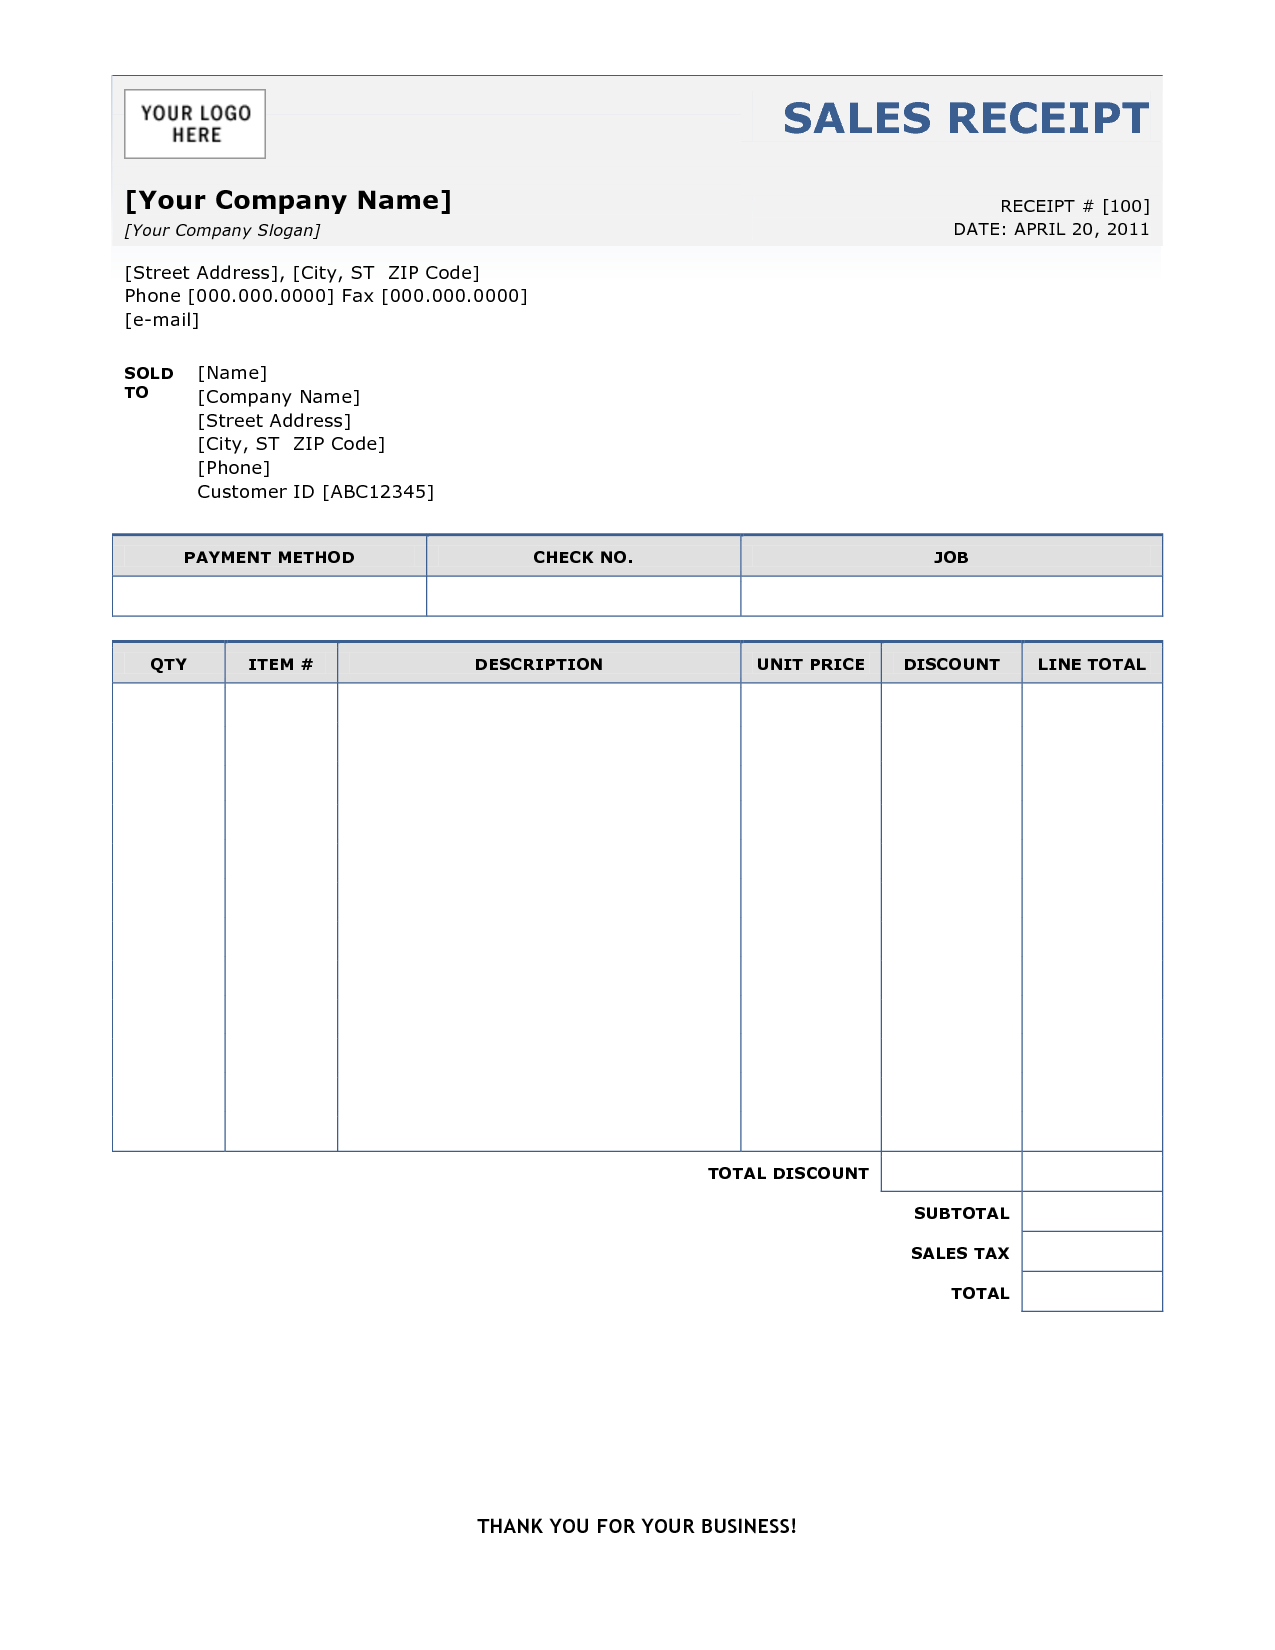 Invoice Line Item Pdf Invoice Receipt  Thebridgesummitco Money Gram Receipt Word with Receipt Template For Rent Pdf Receipt Invoice Template  Invoice Example Fedex International Invoice Pdf